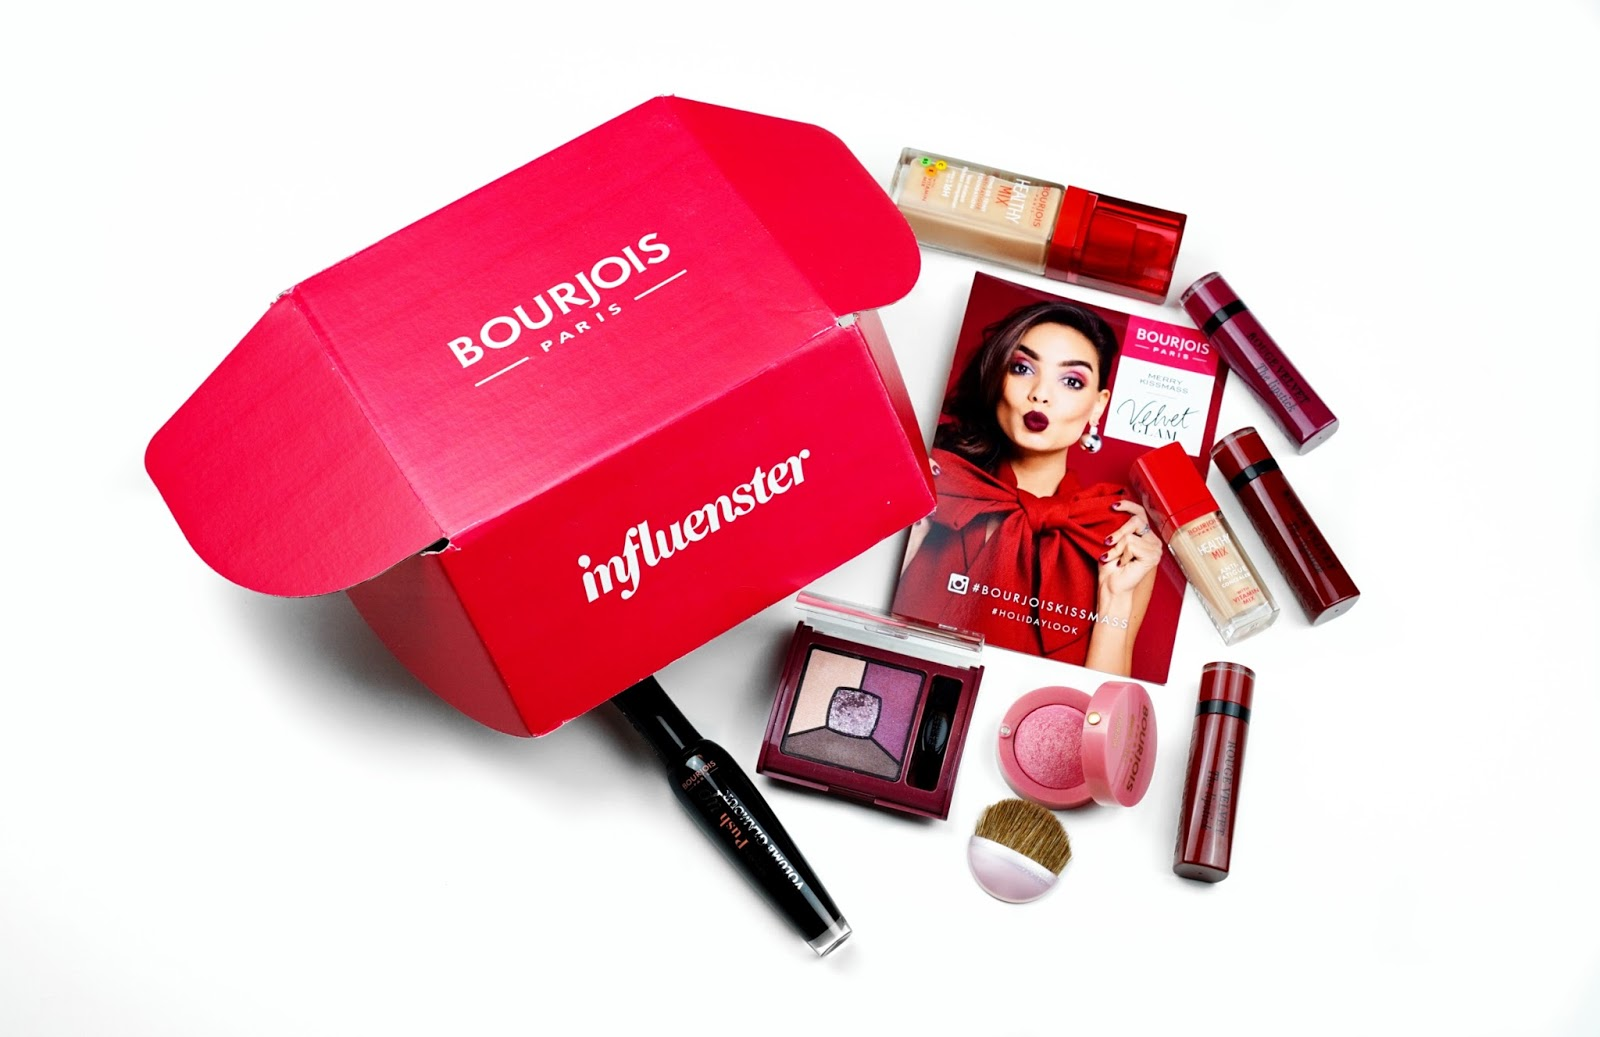 Bourjois_Paris_Rouge_Velvet_The_Lipstick_Influenster_VoxBox